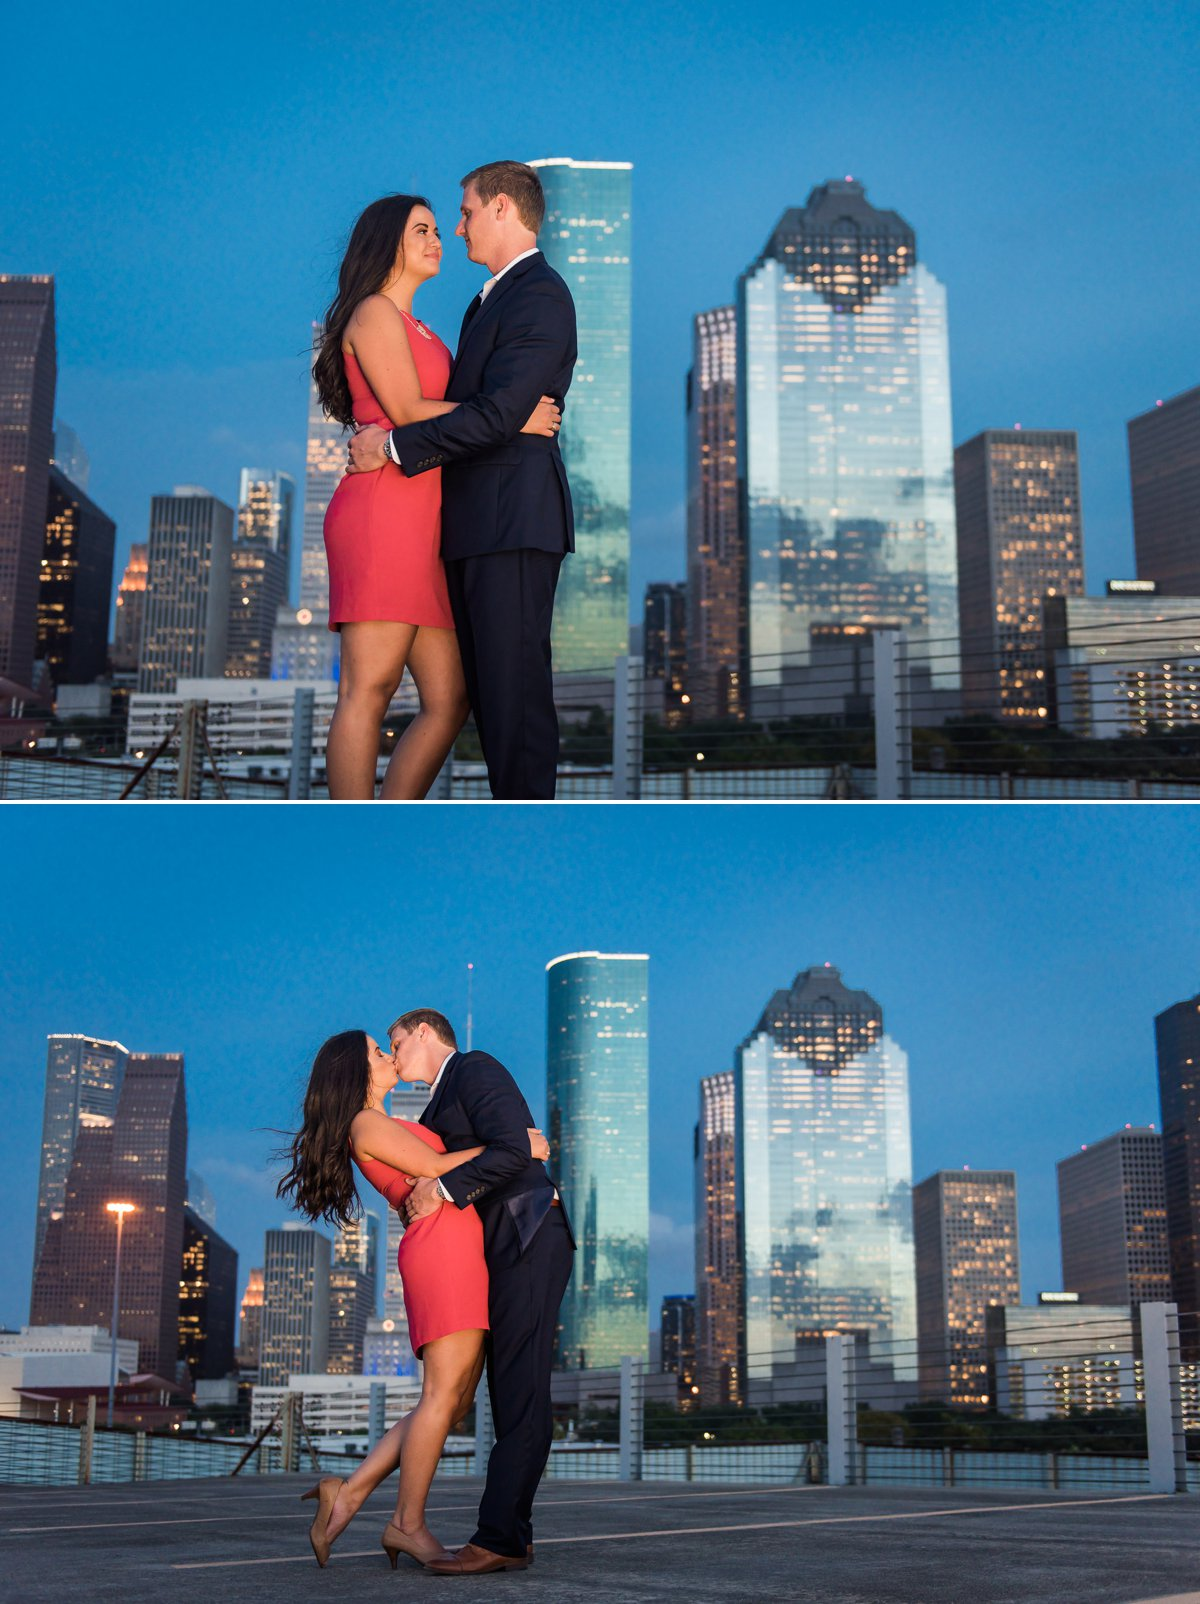 Aubrey-Chris Engagement photo in Houston by Nate Messarra